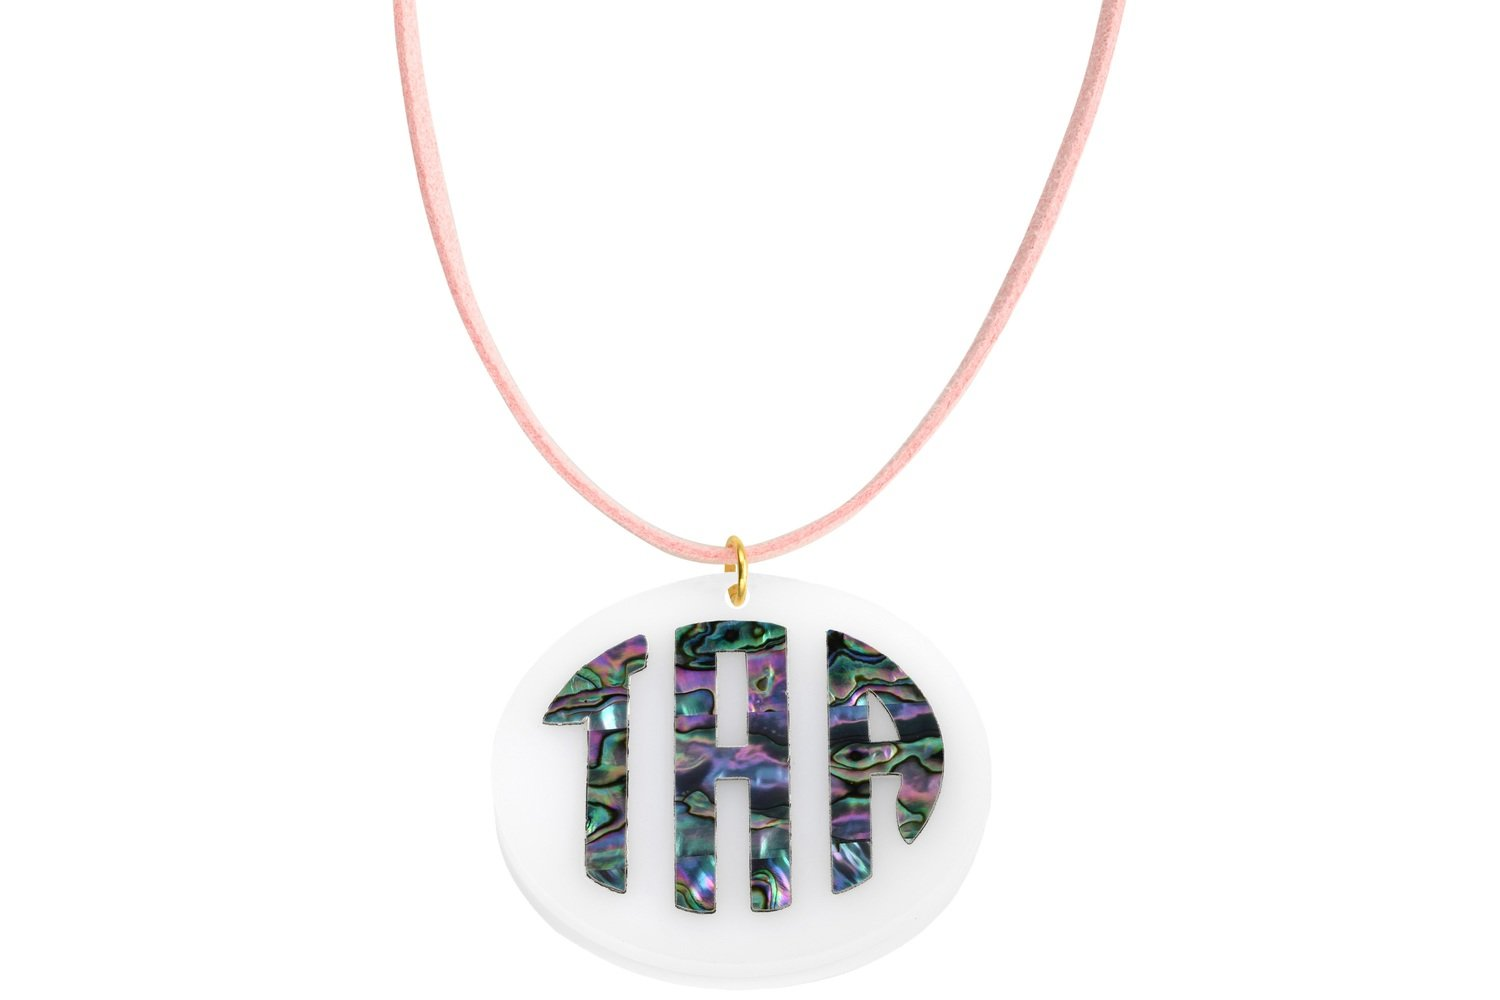 Mother of Pearl Monogram Pendant with Suede Leather Cord Necklace